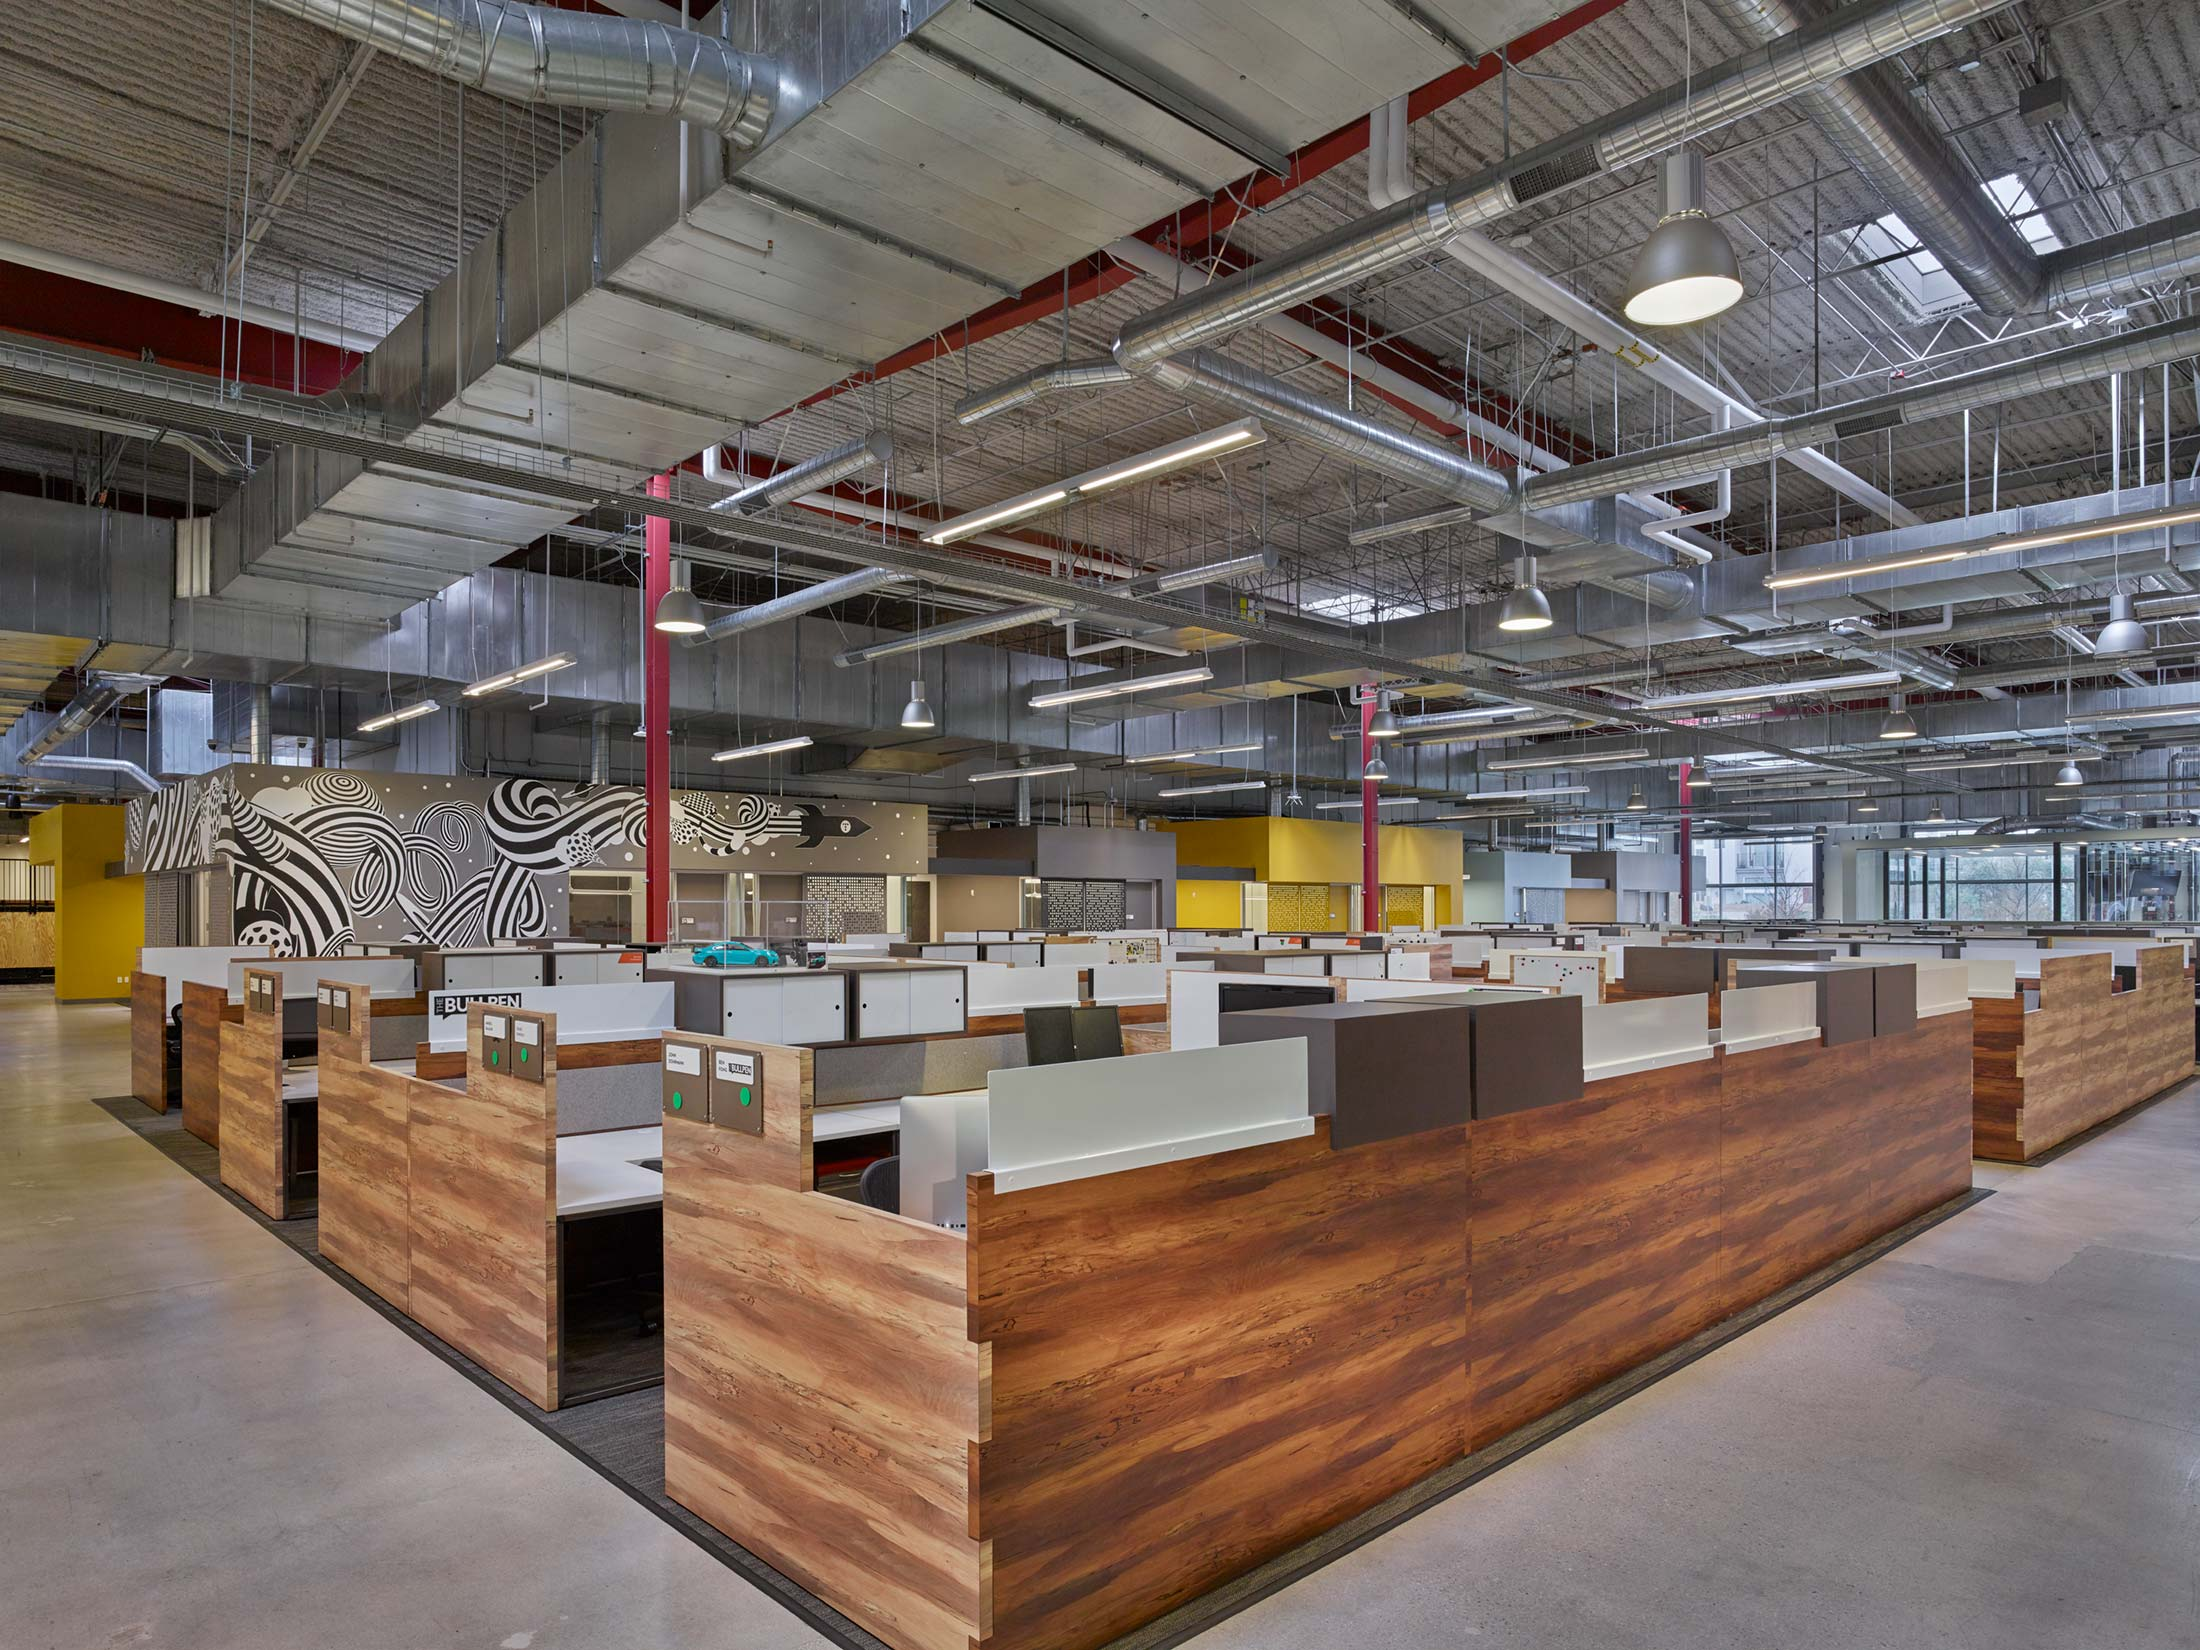 modern-architecture-commercial-interior-adaptive-reuse-workspace-california-shubindonaldson-team-one-usa-10